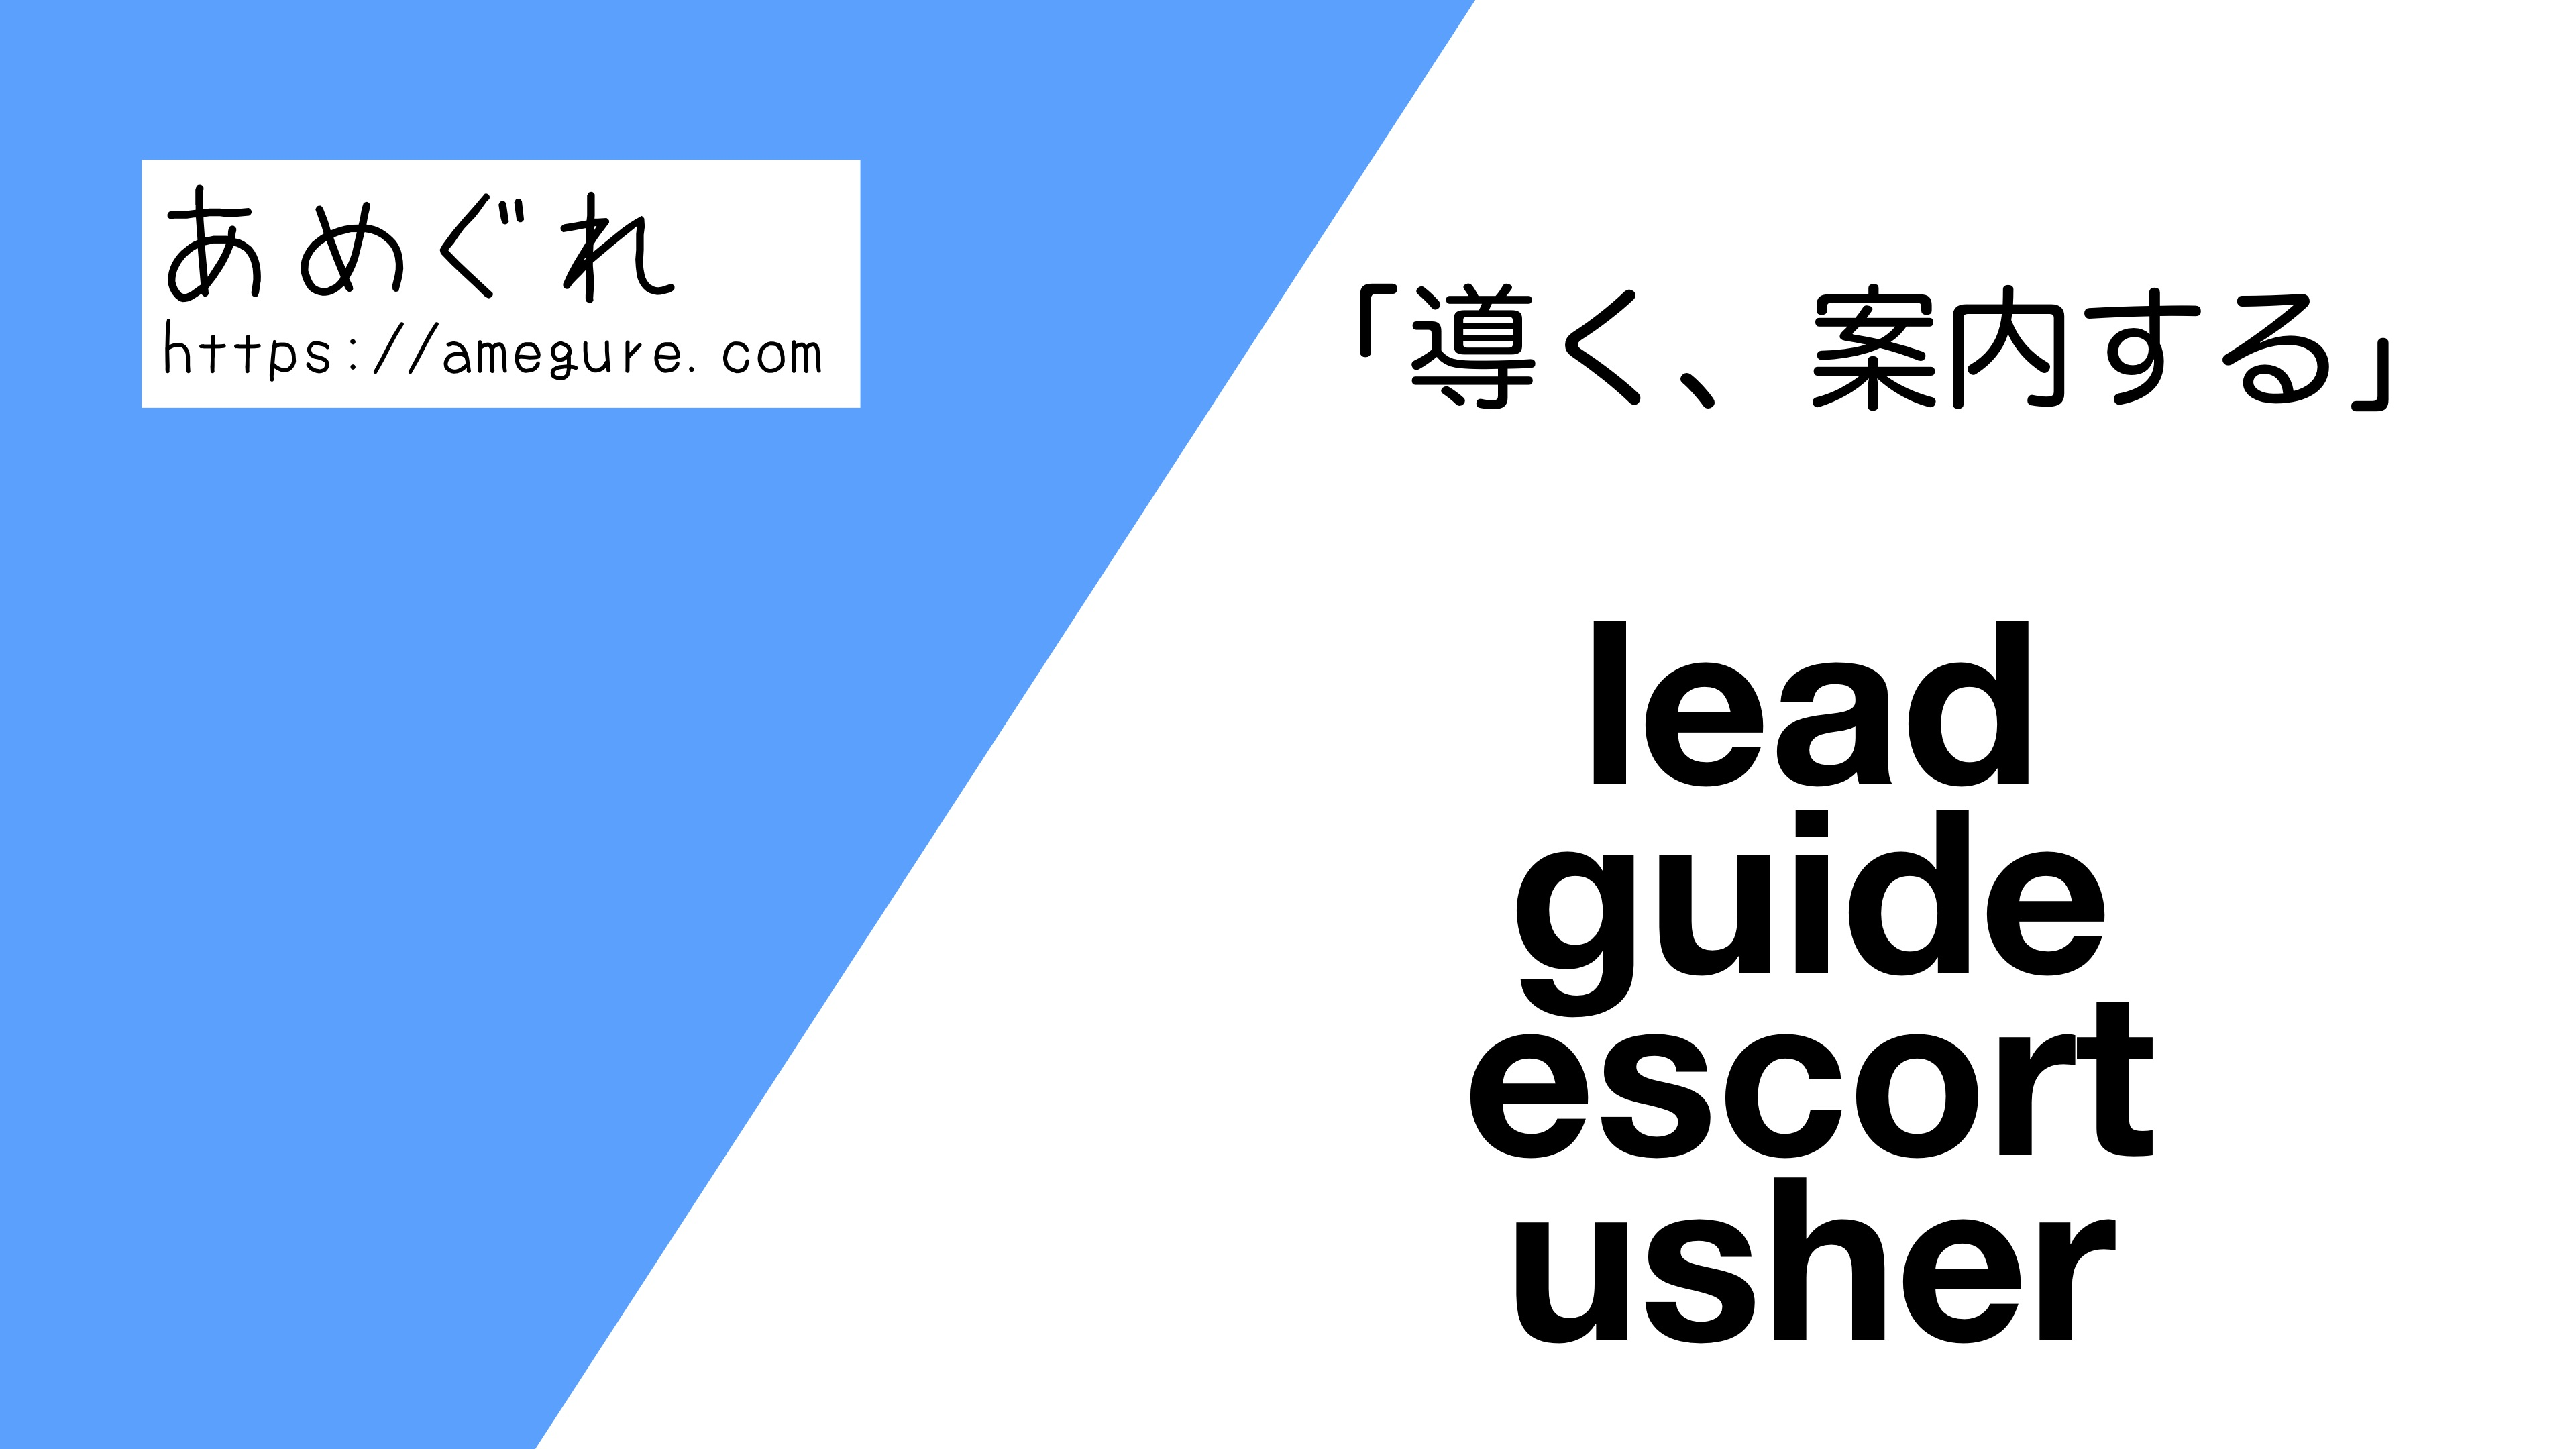 lead-guide-escort-usher違い